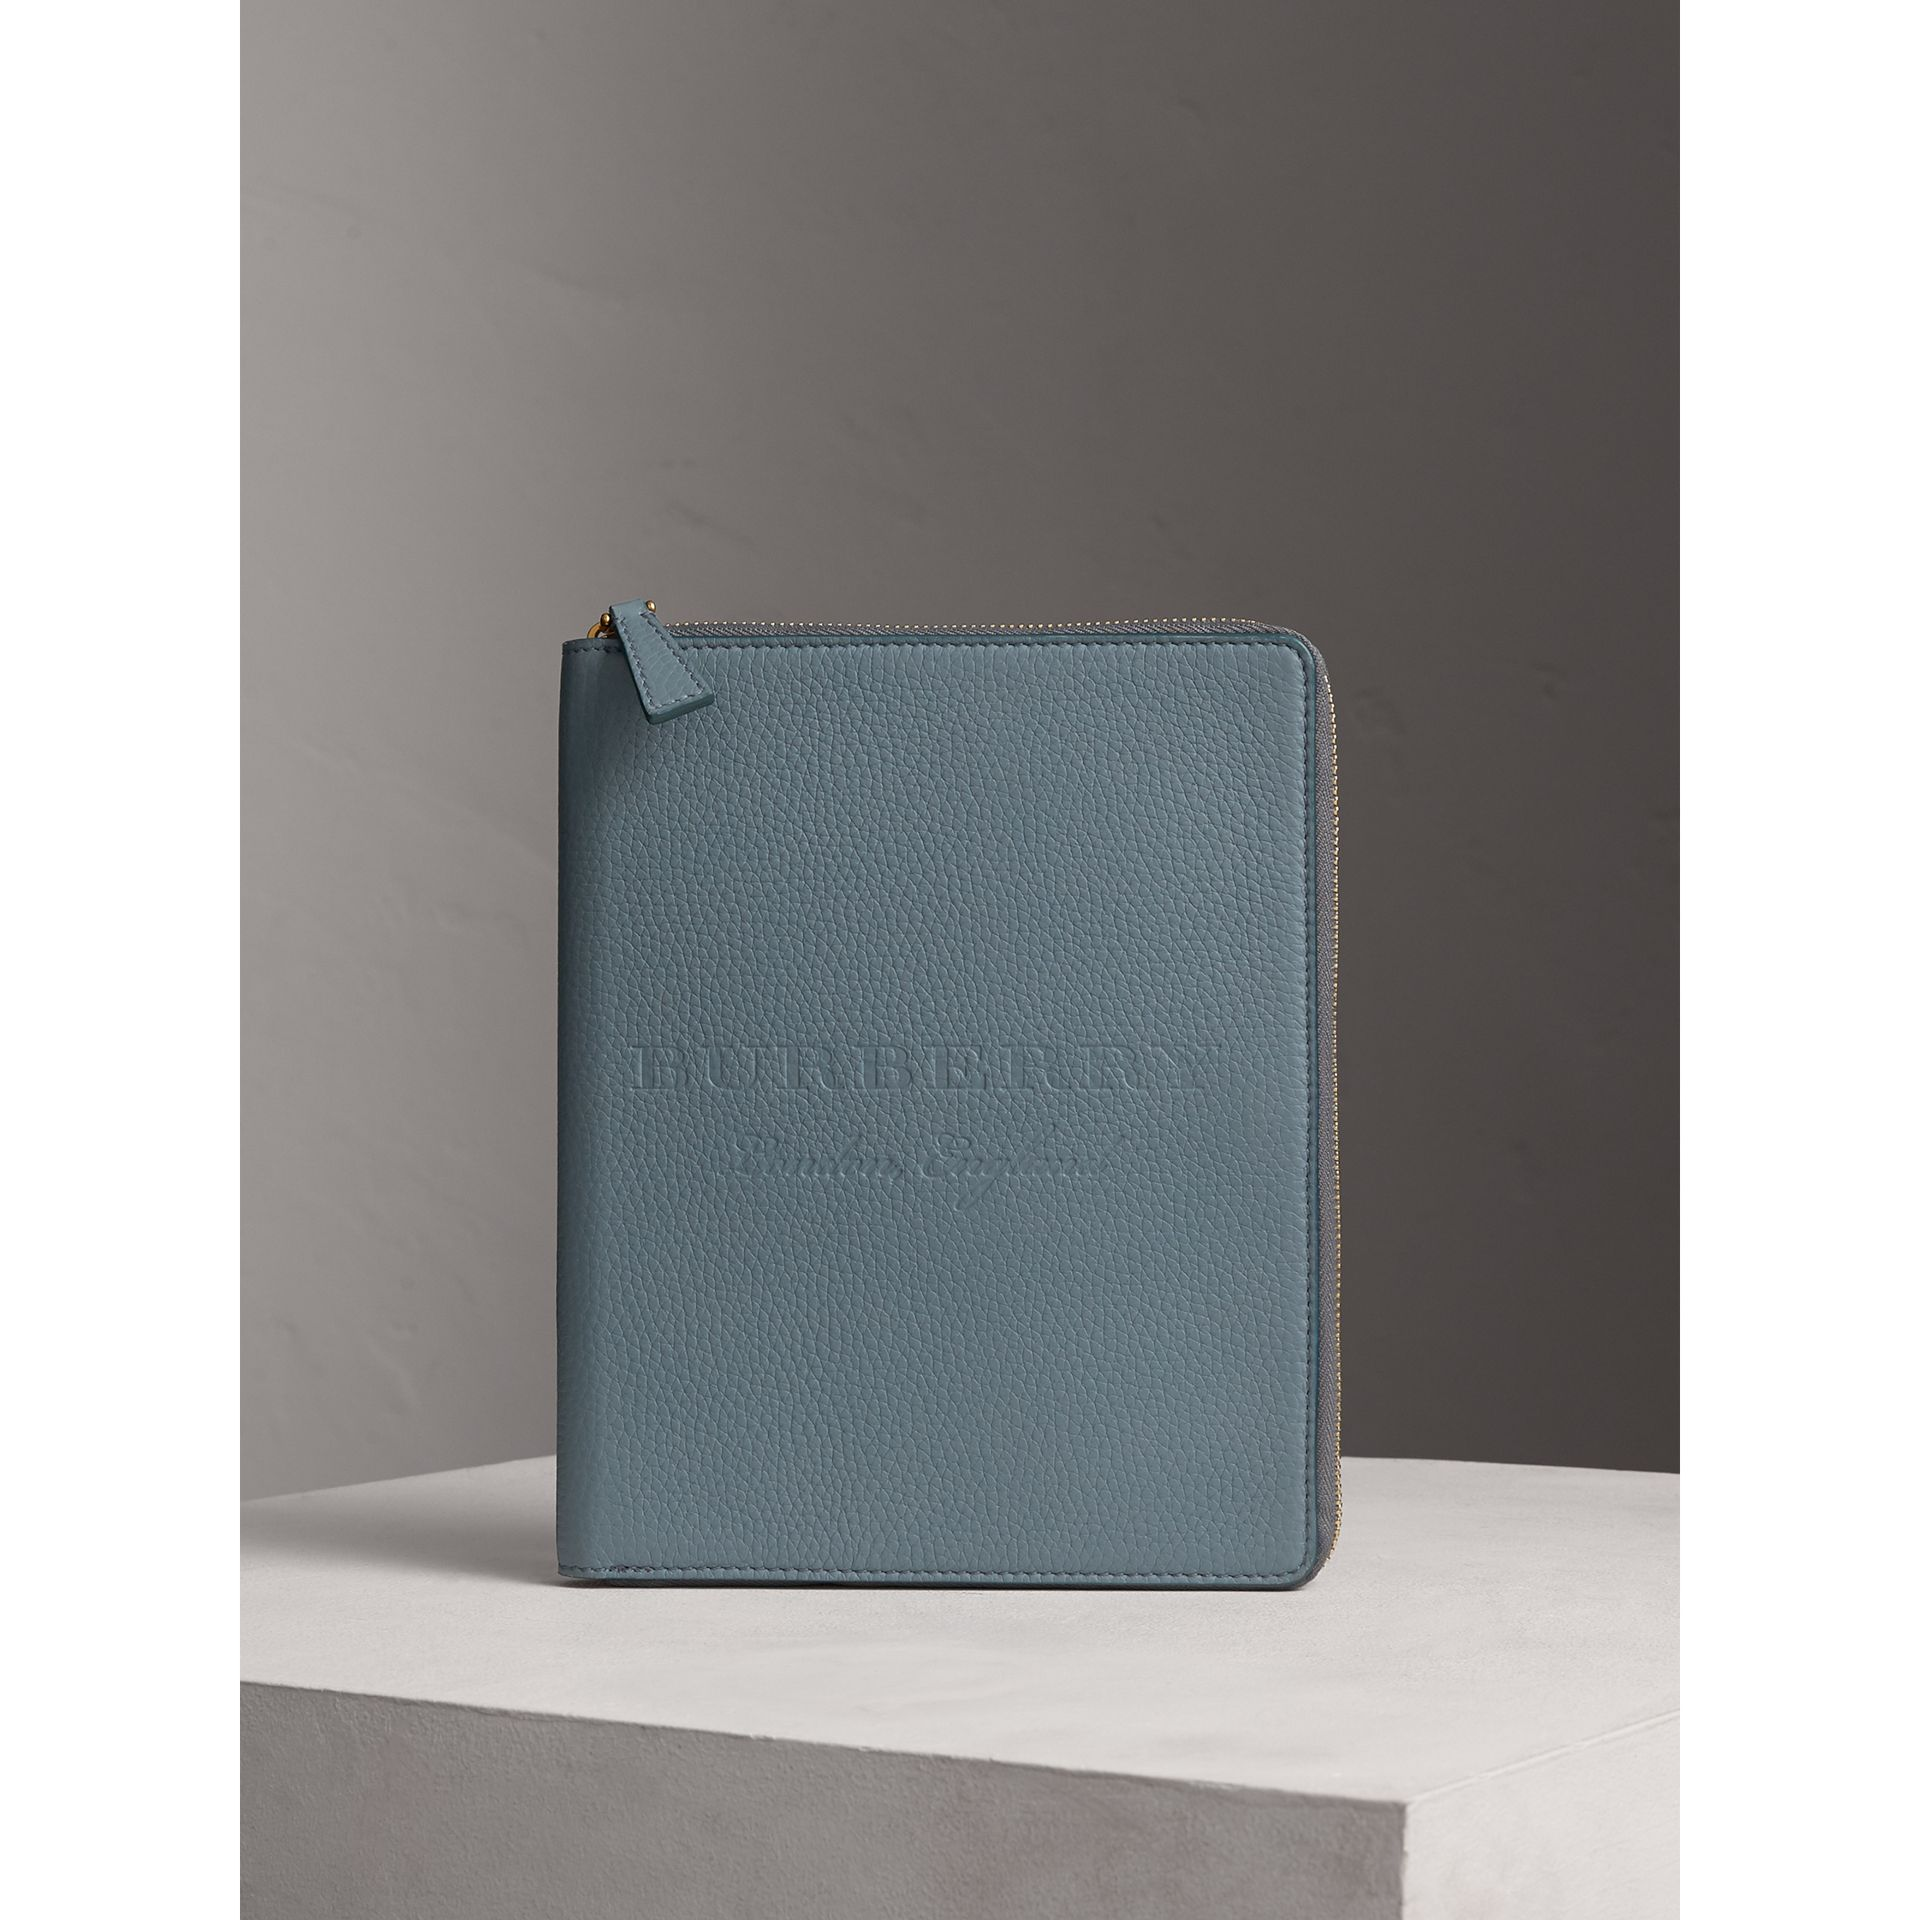 Embossed Leather Ziparound A5 Notebook Case in Dusty Teal Blue | Burberry Hong Kong - gallery image 4